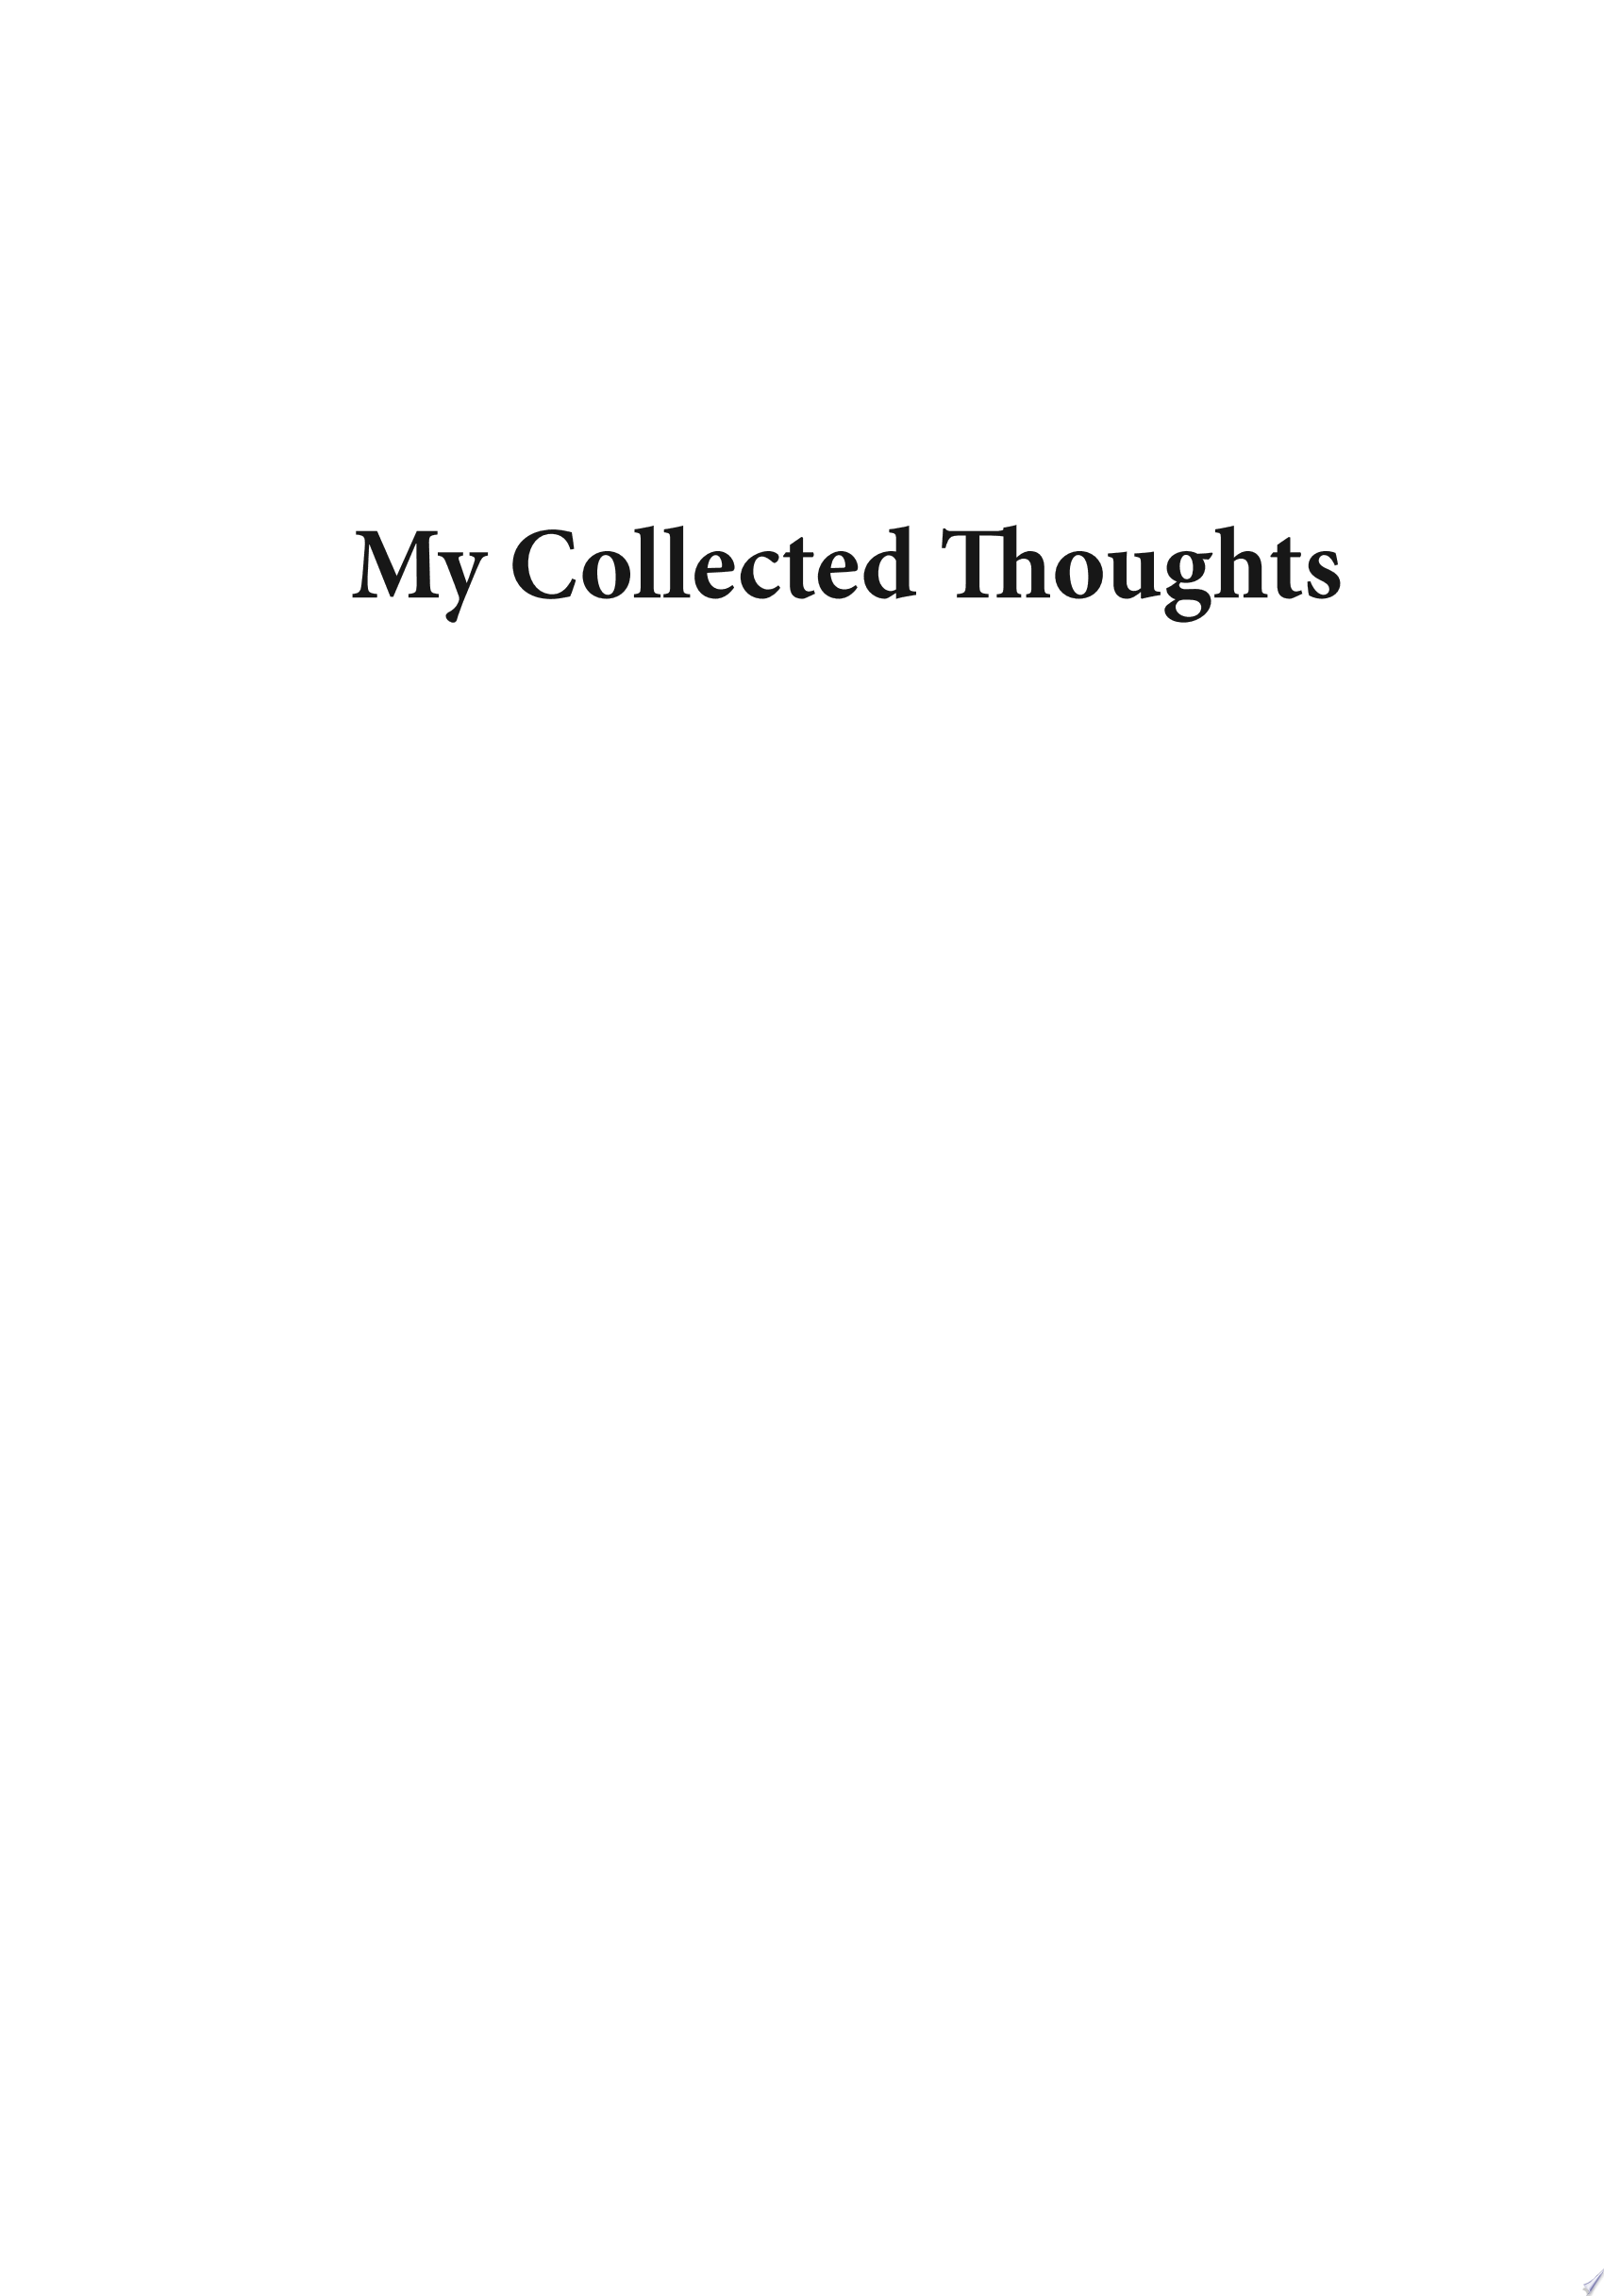 My Collected Thoughts